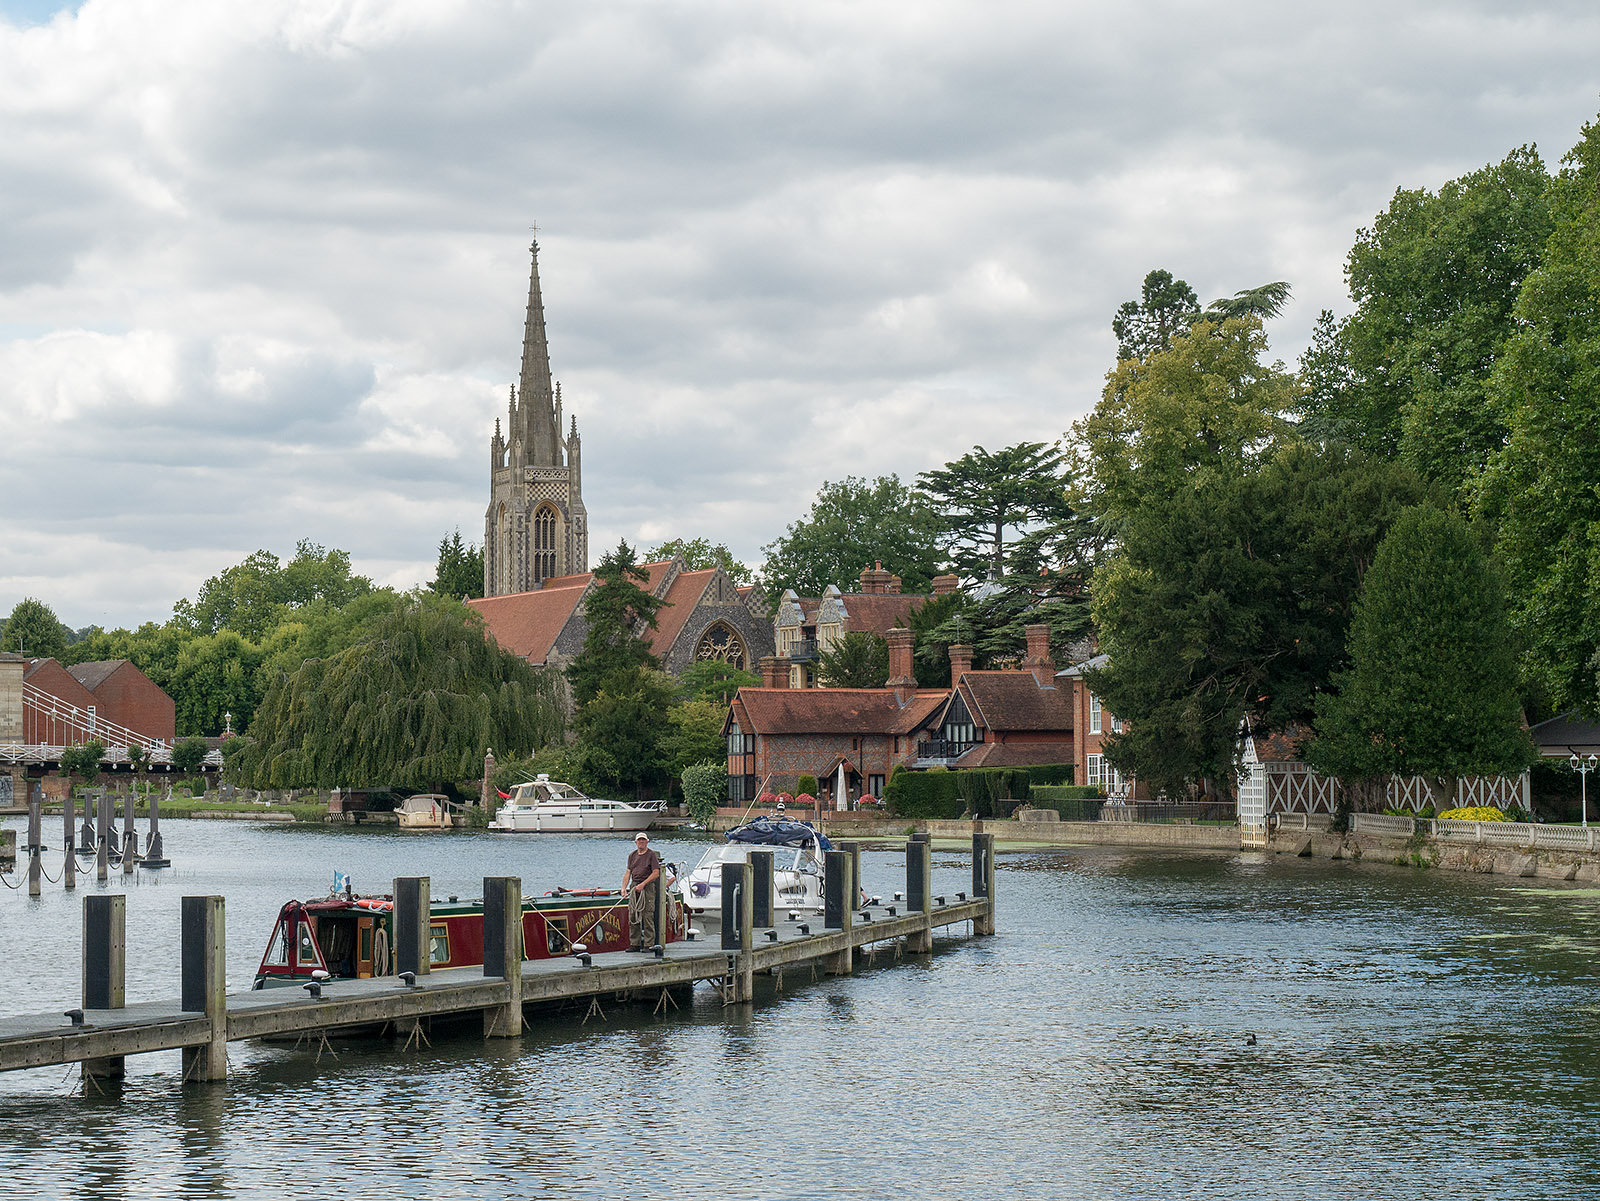 Waterfront at Marlow